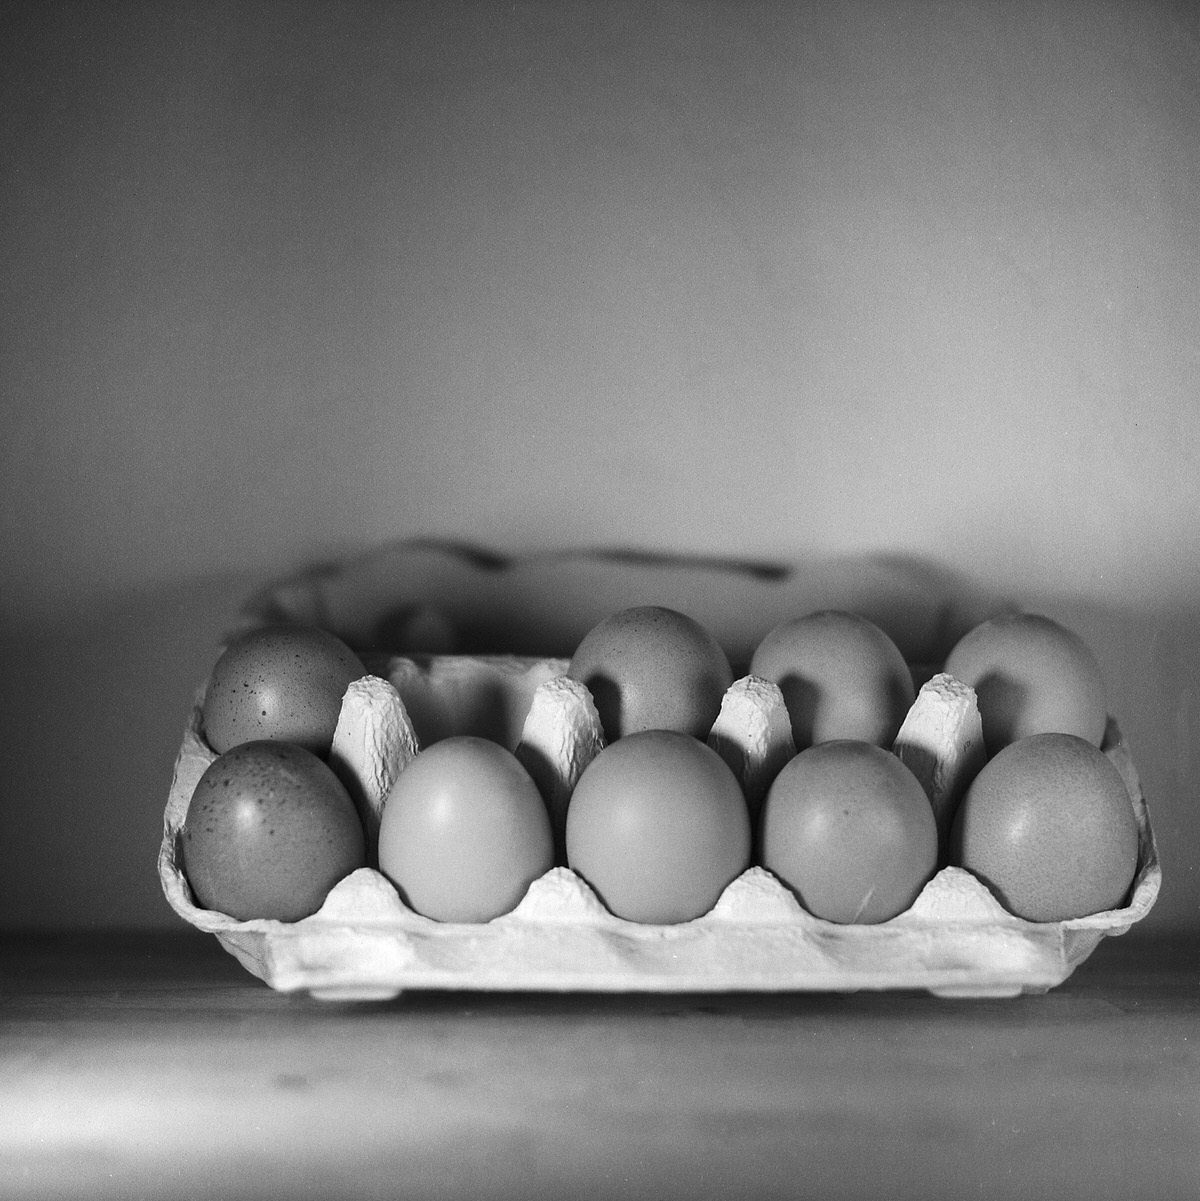 Eggs #1 - Still Life Photography | Yashica MAT124 with Fomapan